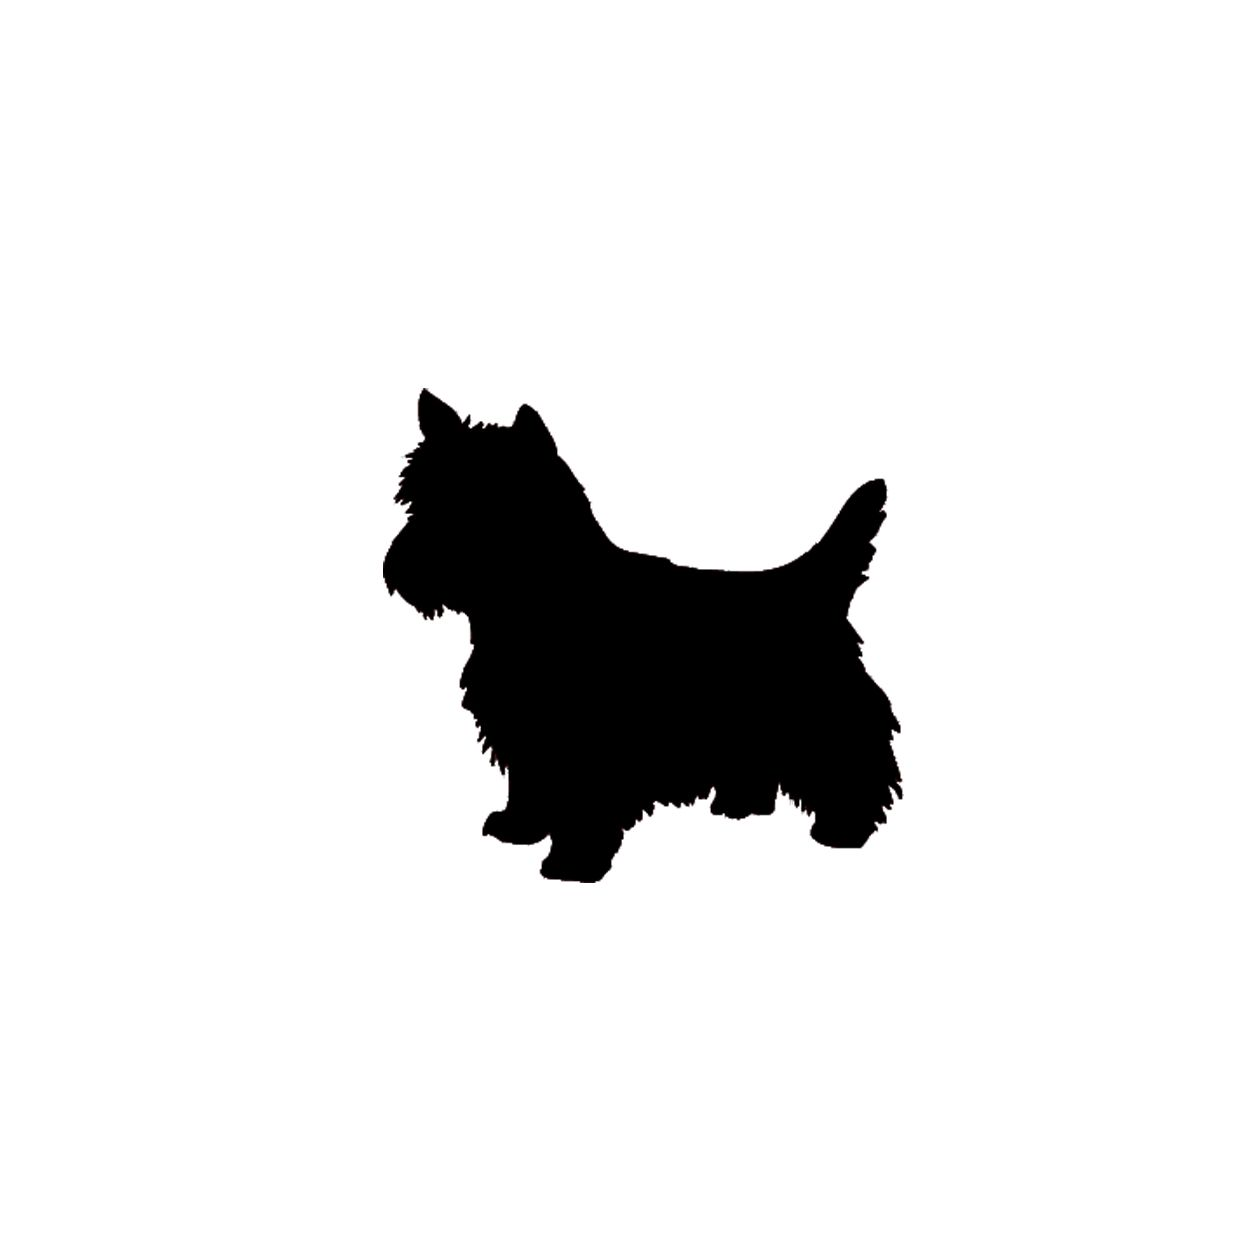 Yorkie clipart cairn terrier. Silhouette at getdrawings com